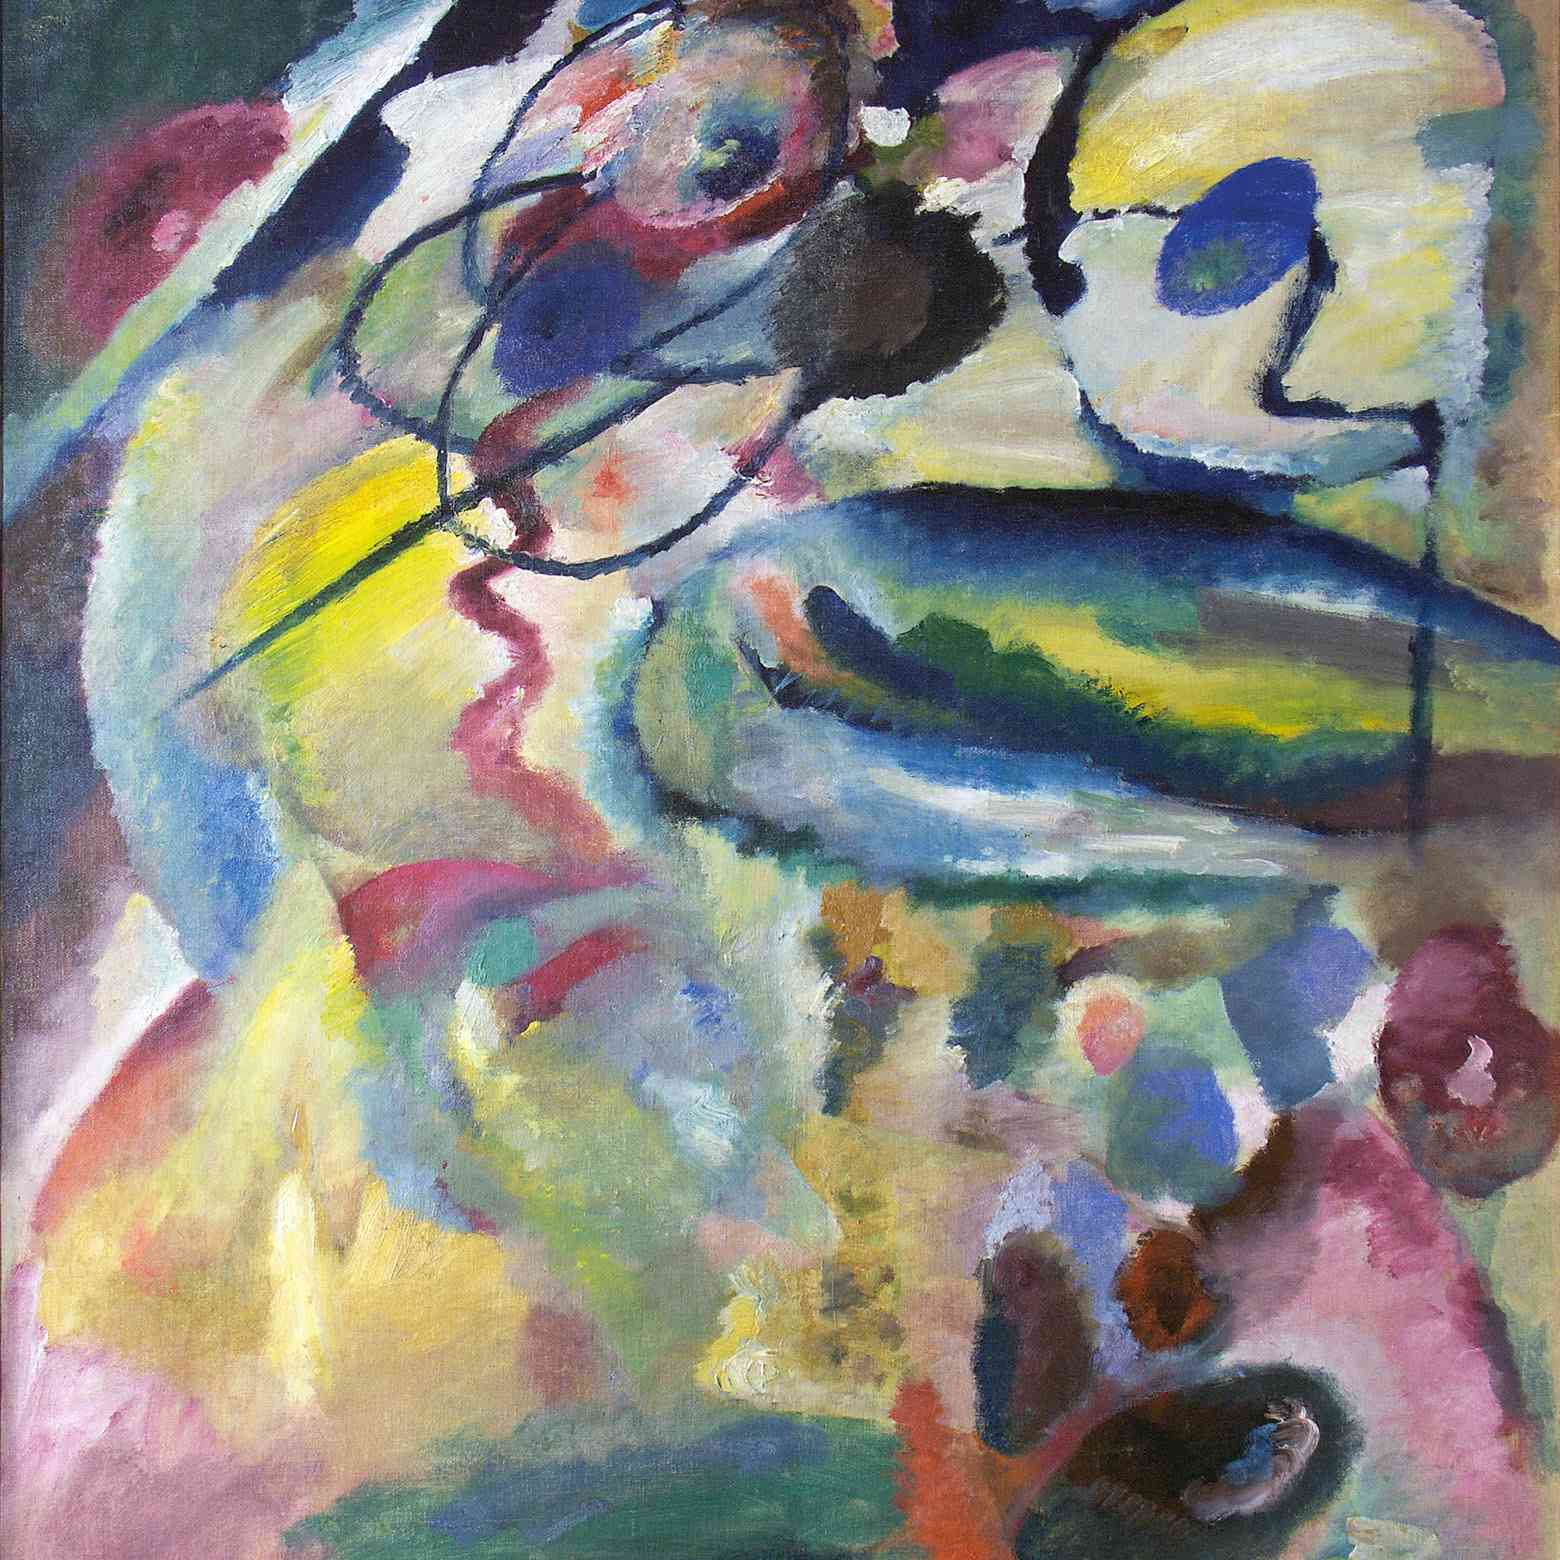 Wassily Kandinsky (Russian, 1866-1944) Wassily Kandinsky (Russian, 1866-1944). Picture with a Circle (Bild mit Kreis), 1911. Oil on canvas. 54 11/16 x 43 11/16 in. (139 x 111 cm). Georgian National Museum, Tbilisi.